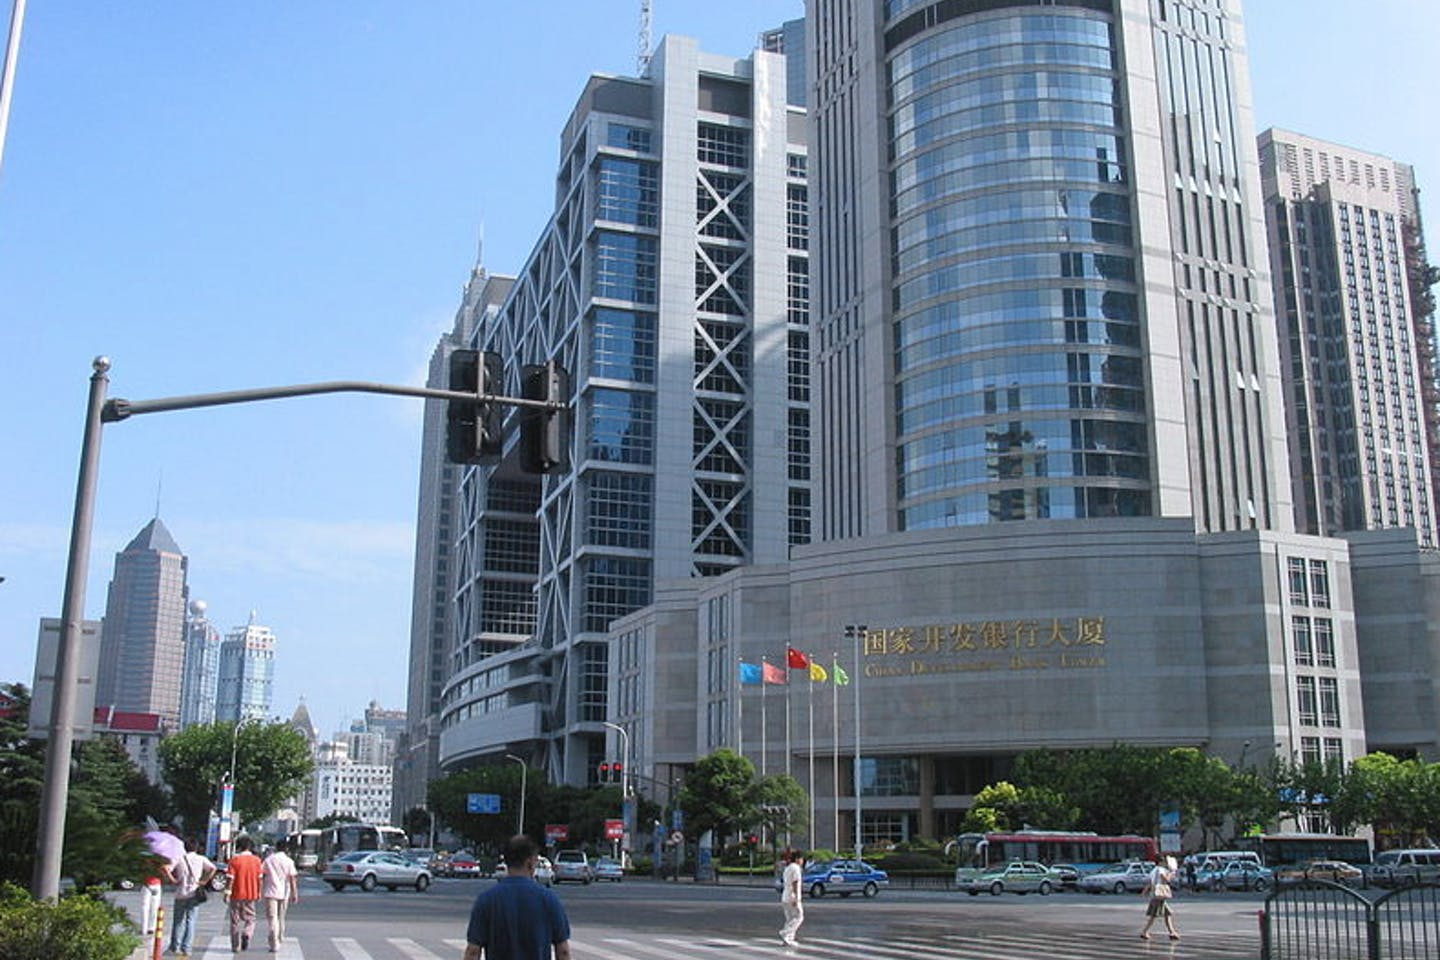 china development bank tower